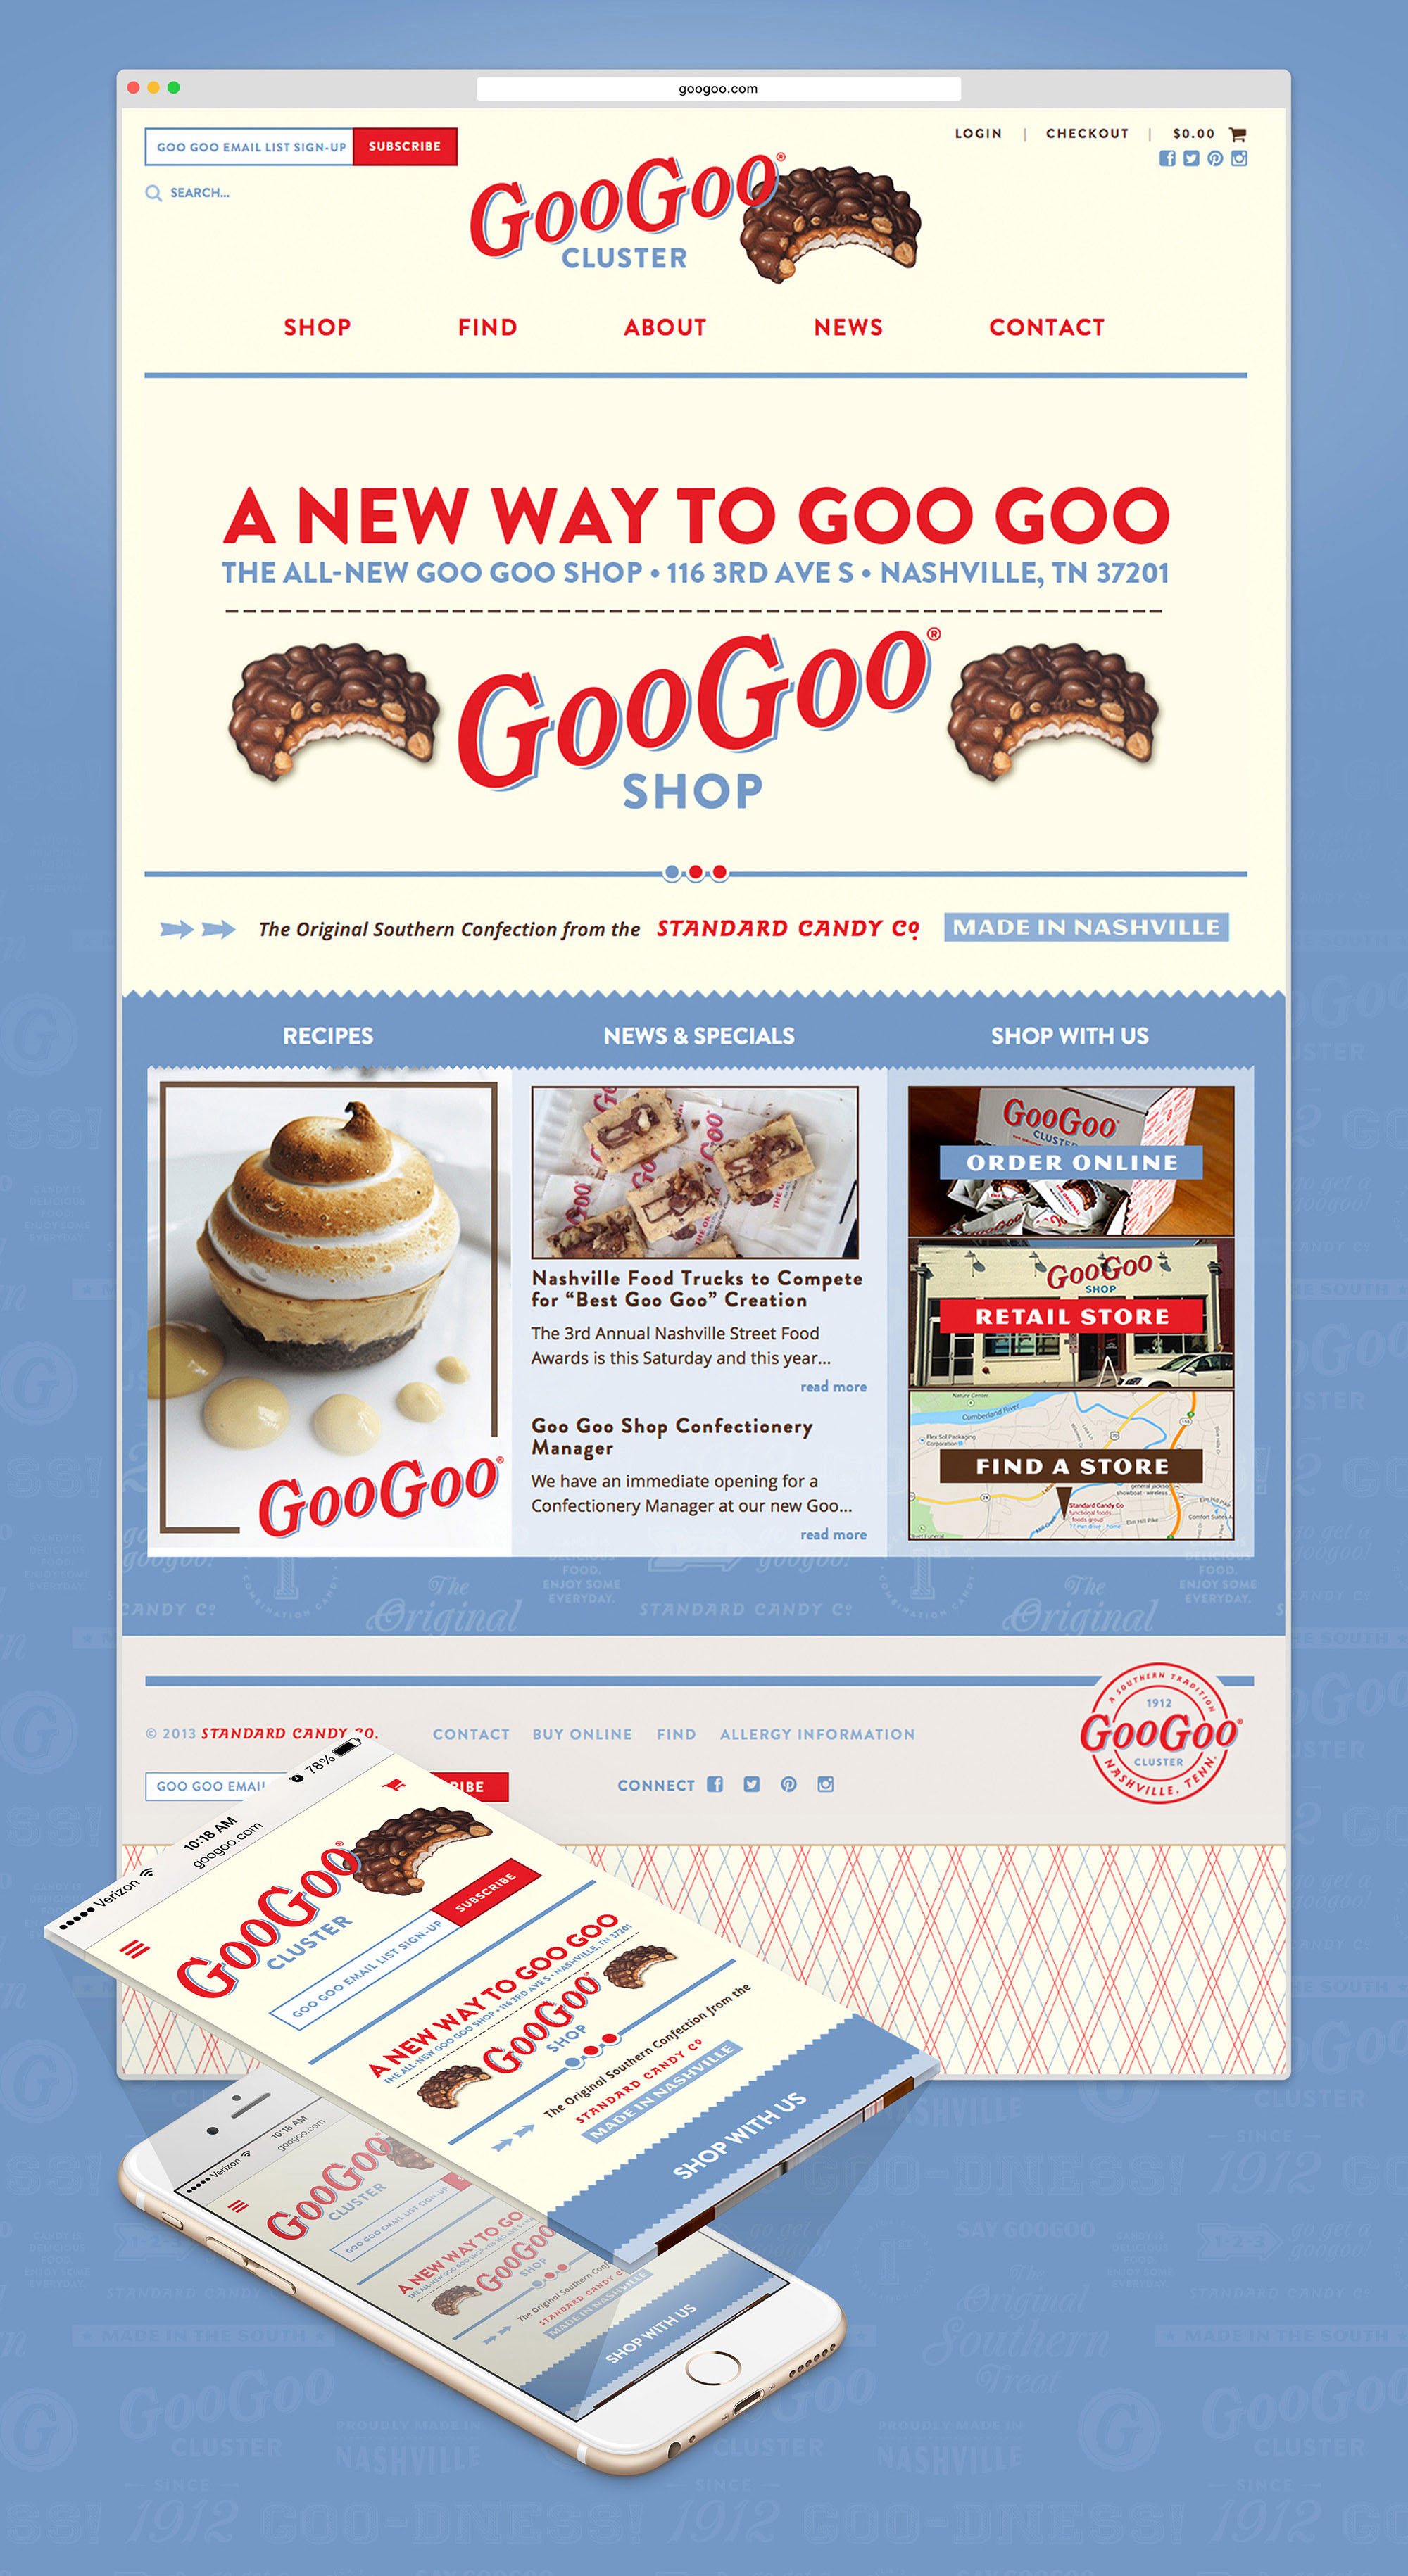 googoo-cluster-website